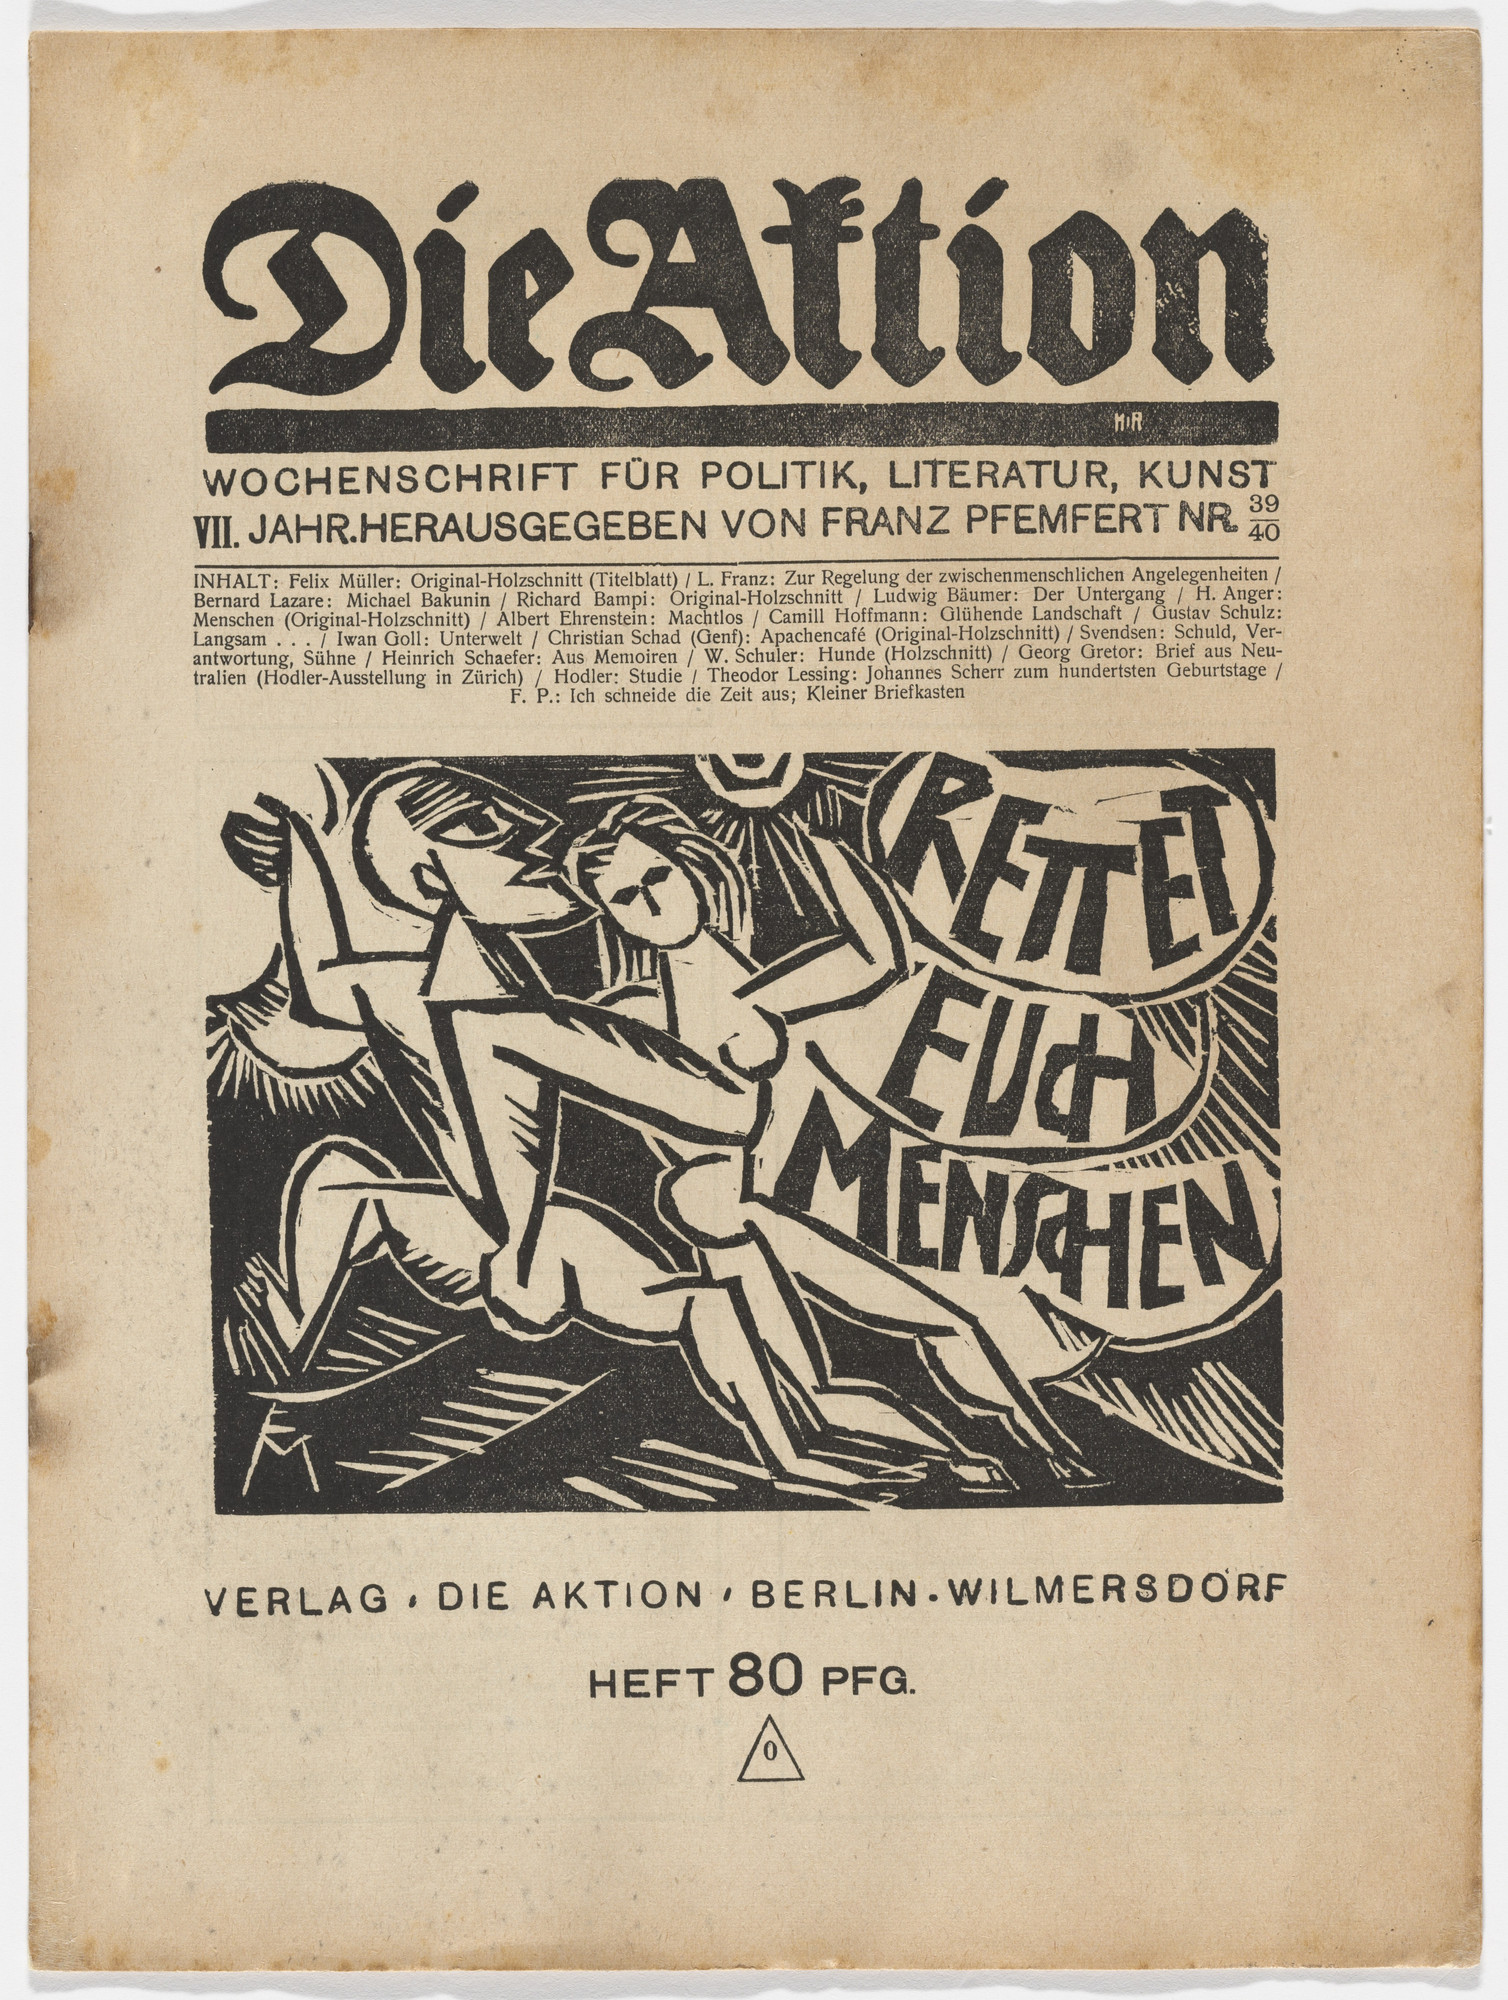 Conrad Felixmüller, Richard Bampi, Herbert Anger, Christian Schad, Wilhelm Schuler. Die Aktion, vol. 7, no. 39/40. October 6, 1917